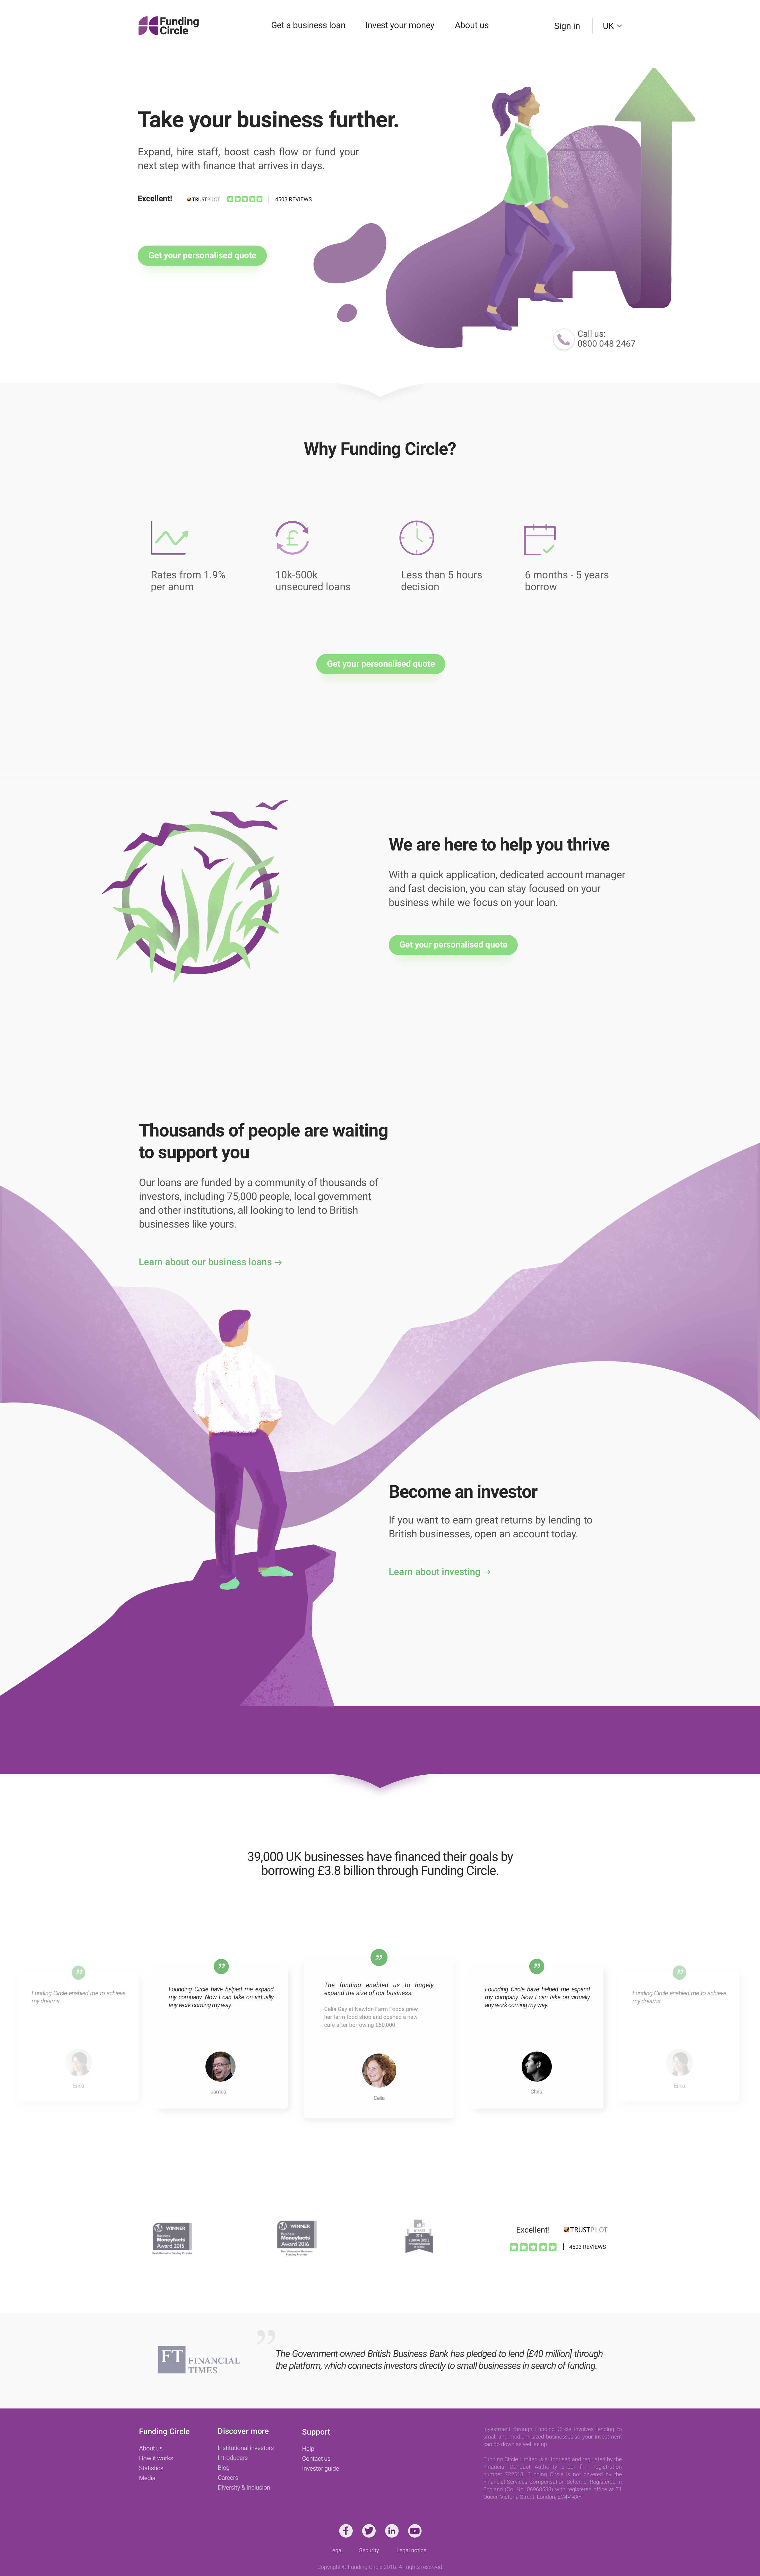 redesign with illustrations for fintech